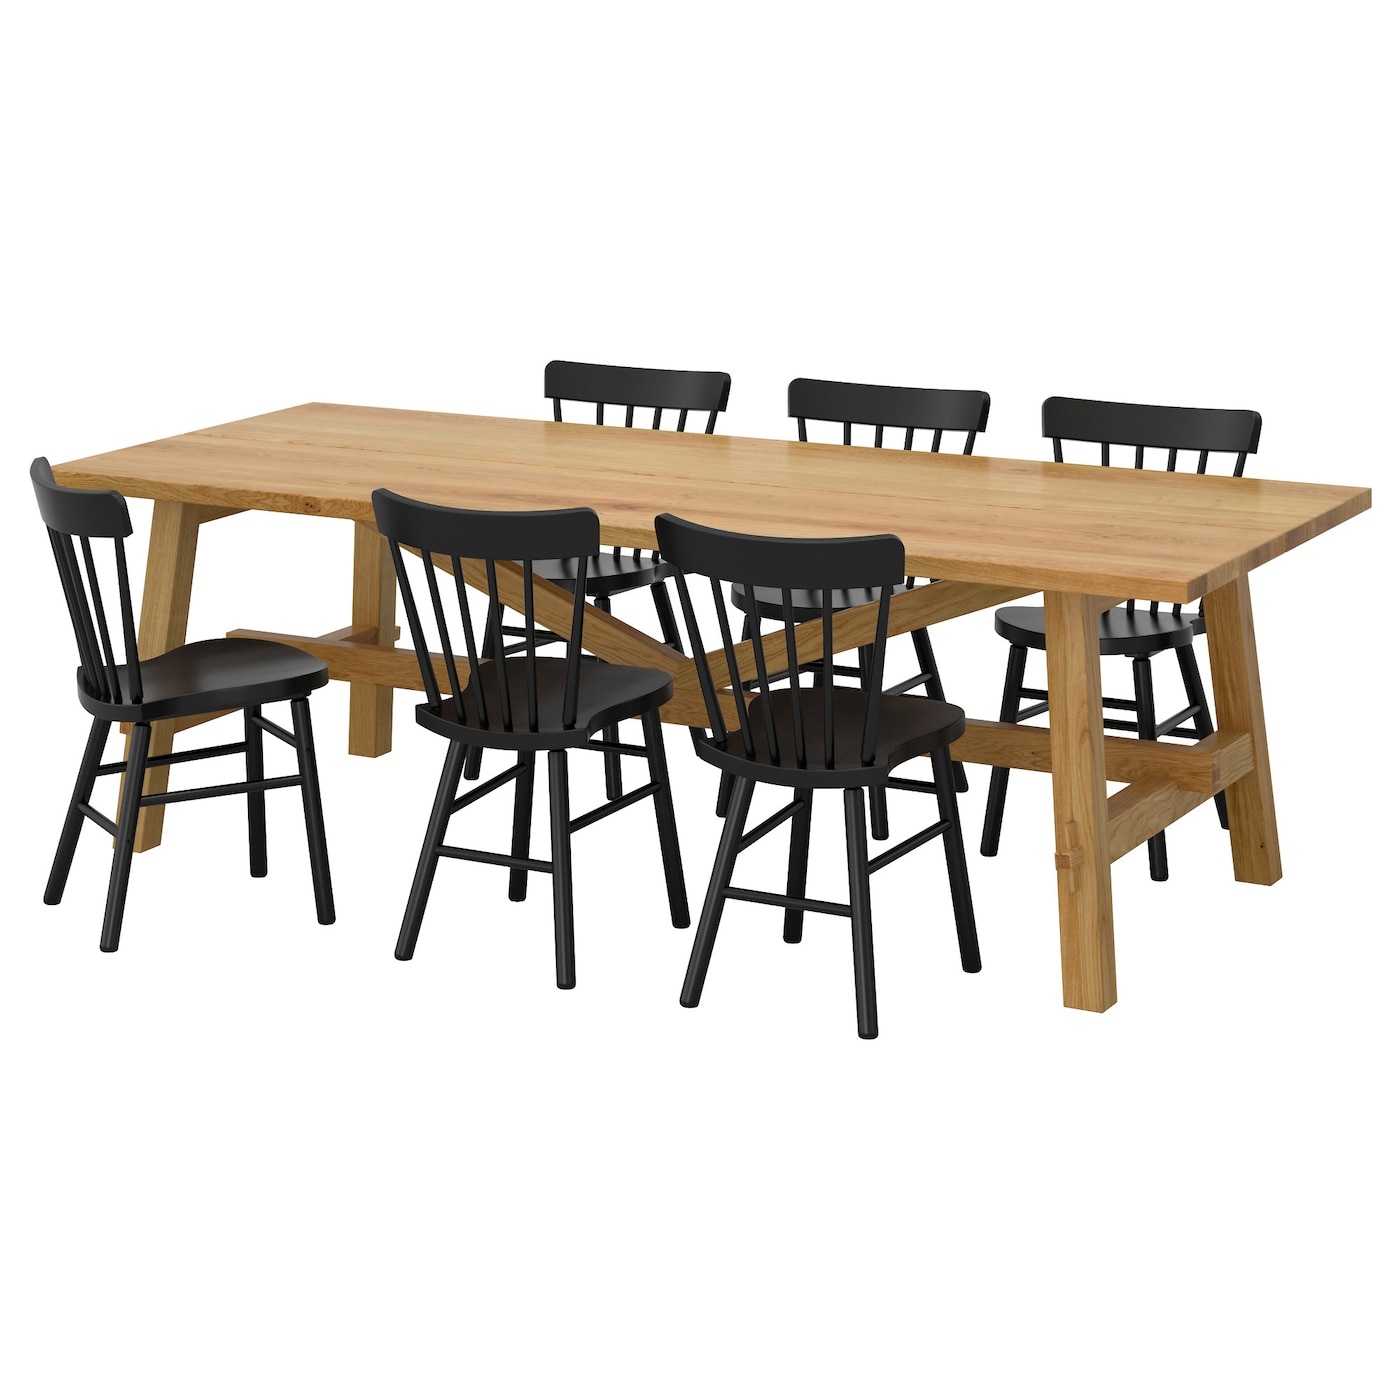 IKEA NORRARYD/MÖCKELBY table and 6 chairs